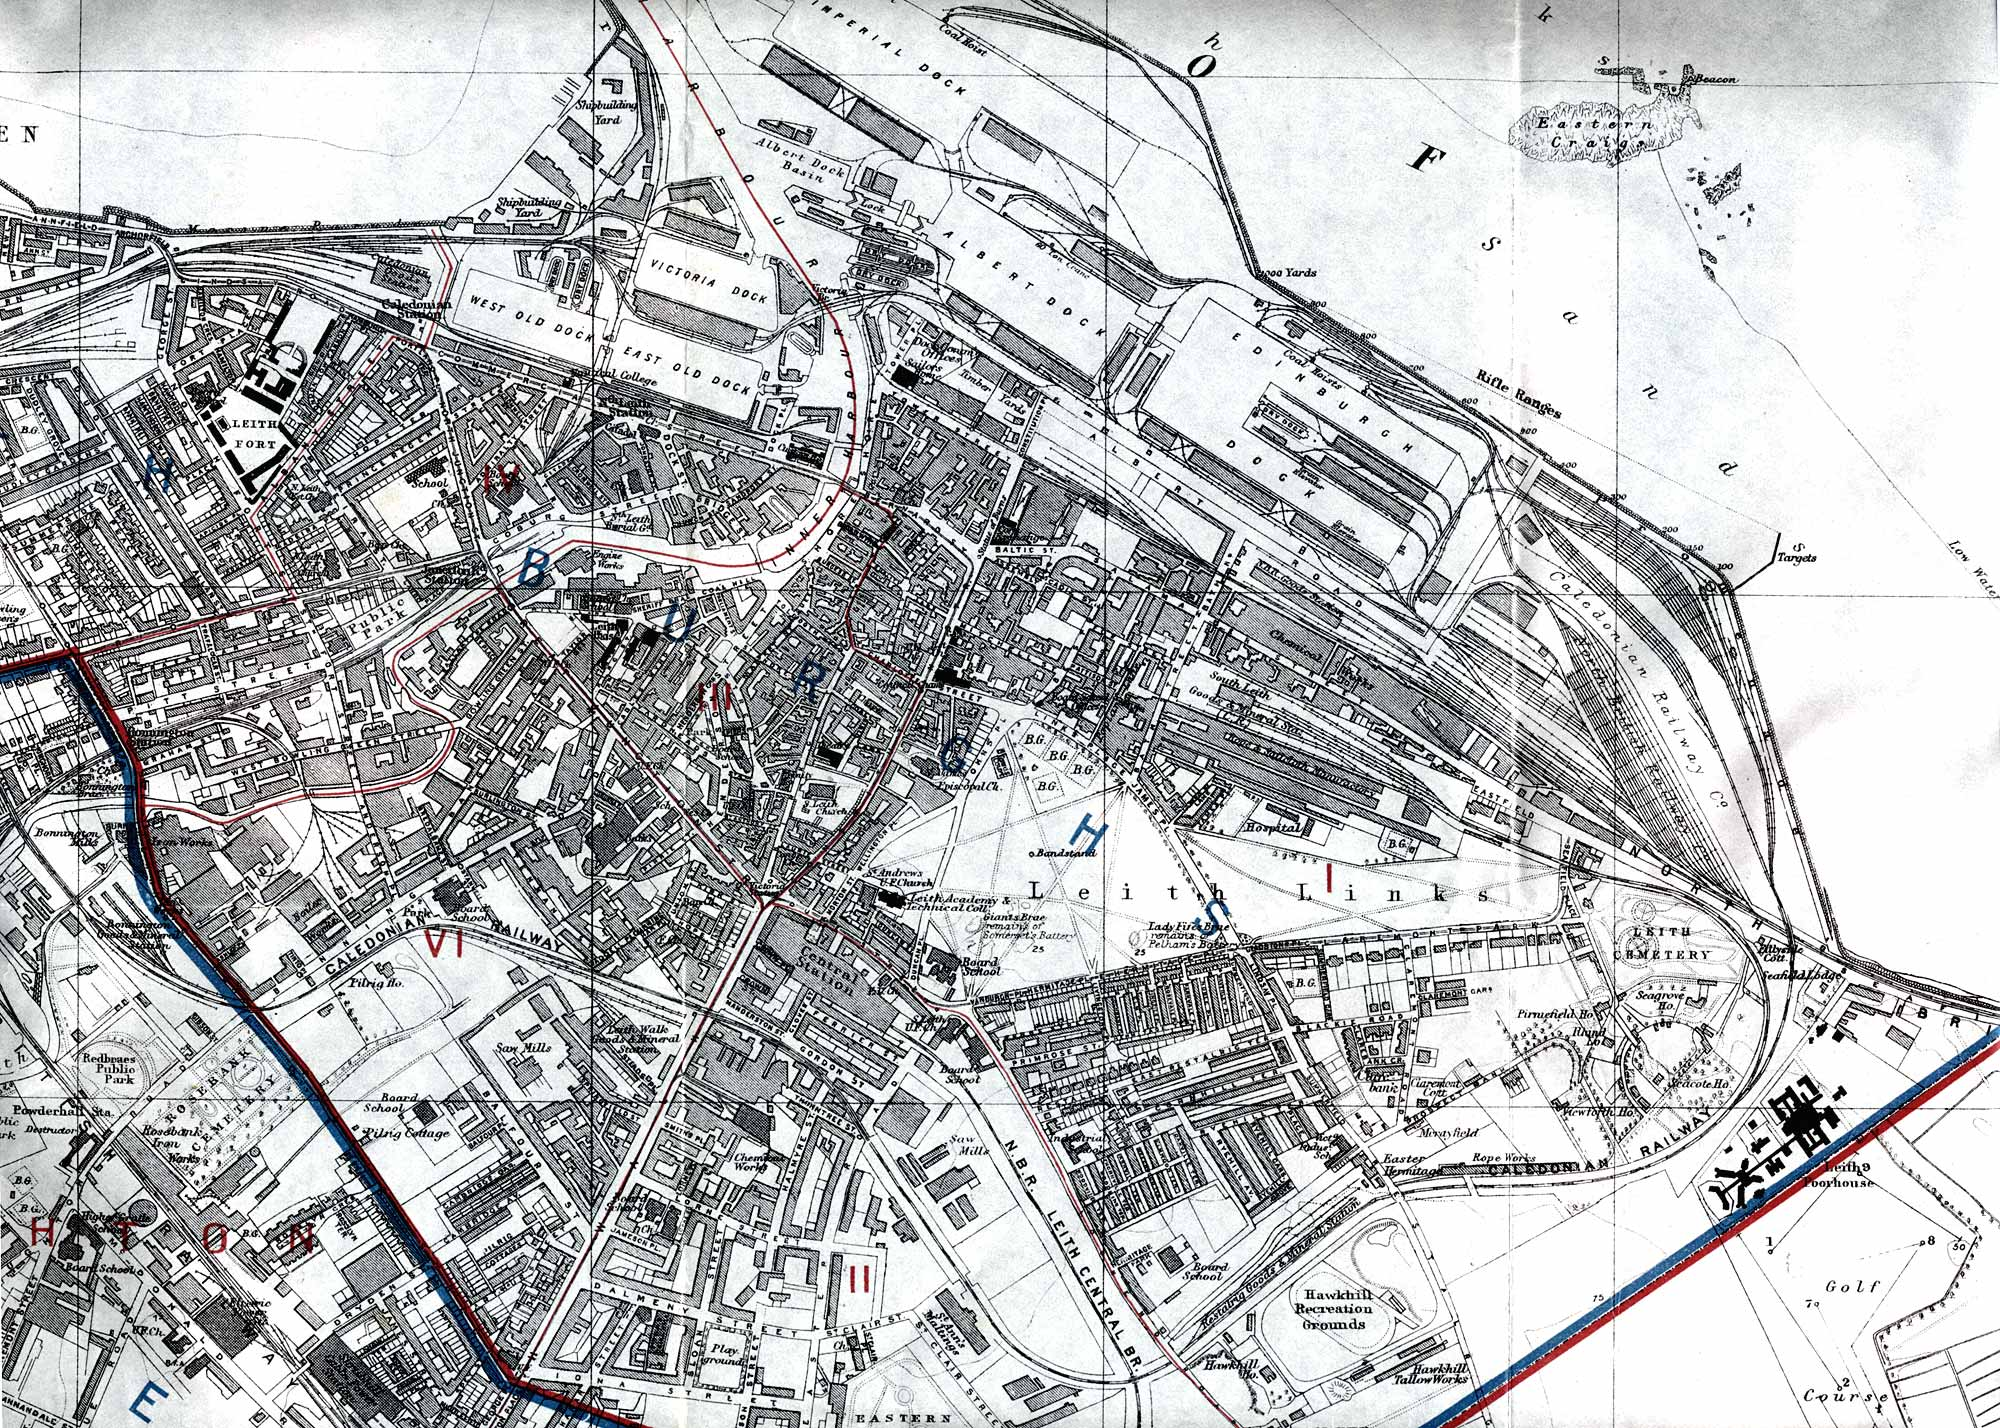 Edinburgh map Leith 1915 enlarged